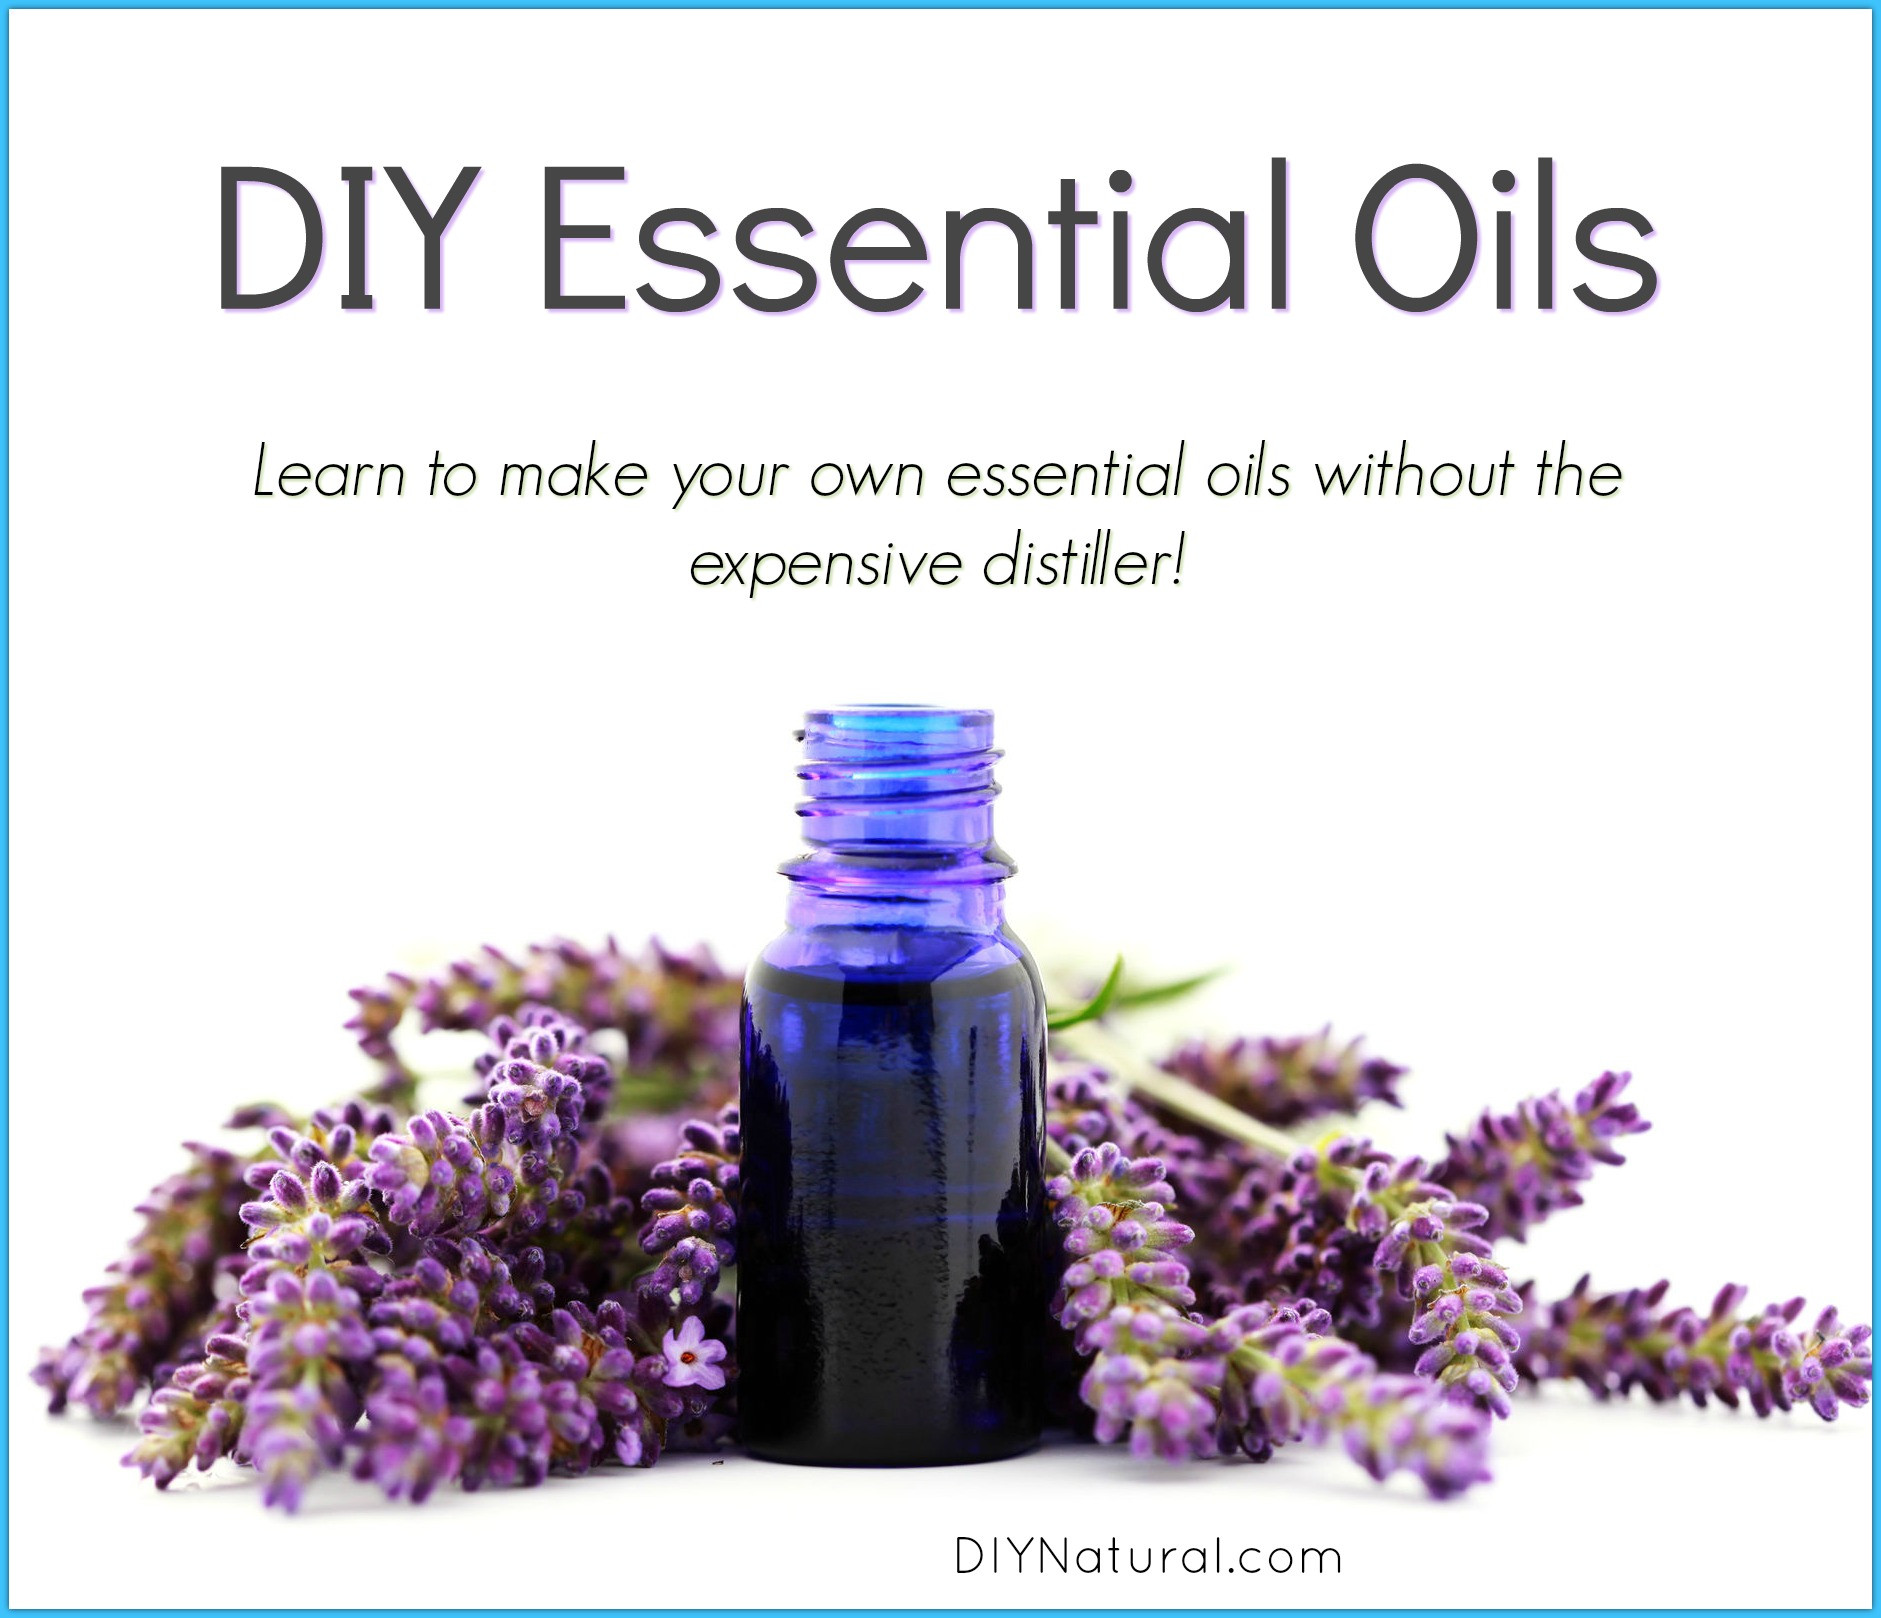 Best ideas about DIY Essential Oils . Save or Pin DIY Essential Oils Learn How To Make Your Own Essential Oils Now.